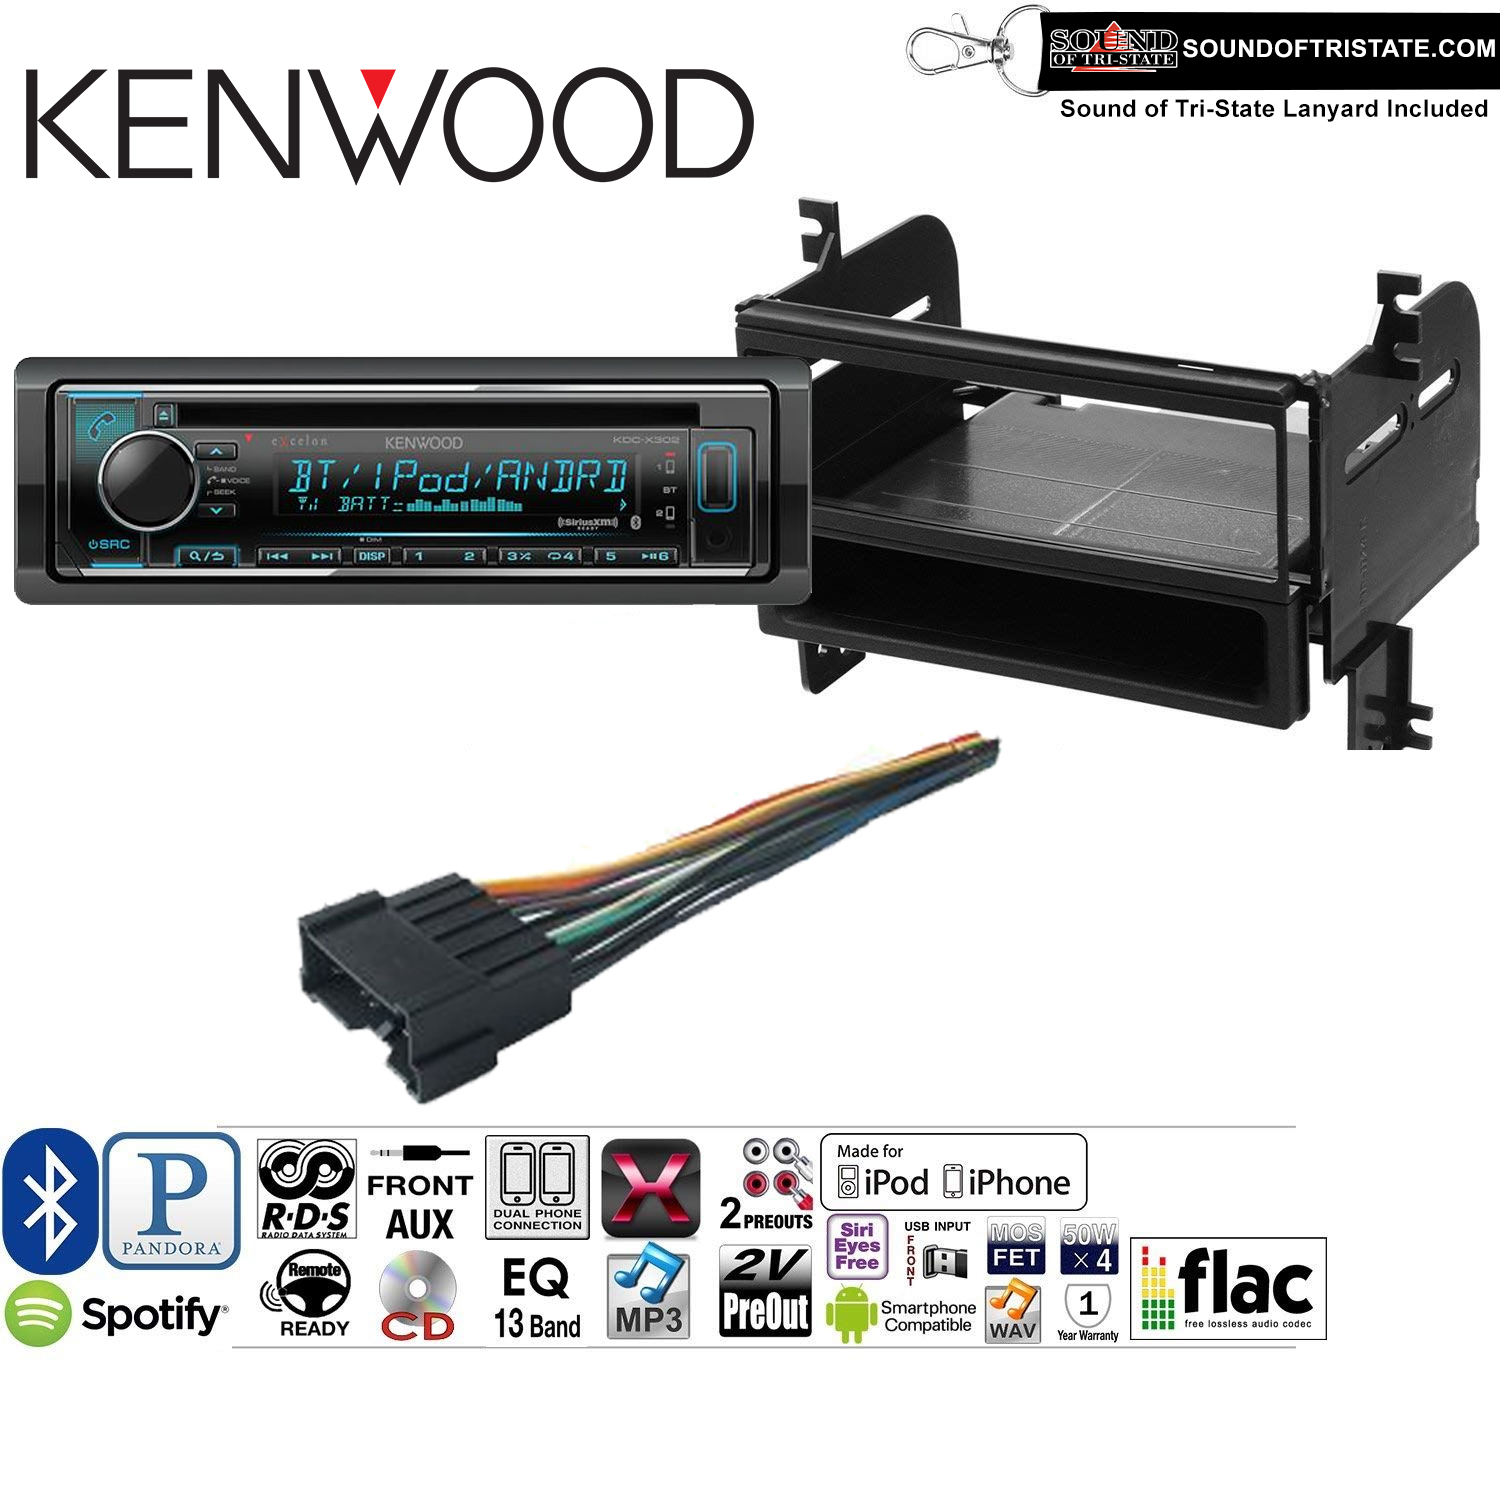 Kenwood KDCX302 Double Din Radio Install Kit with Bluetooth, CD Player, USB/AUX Fits 2005-2008 Hyundai Tucson and a SOTS lanyard included